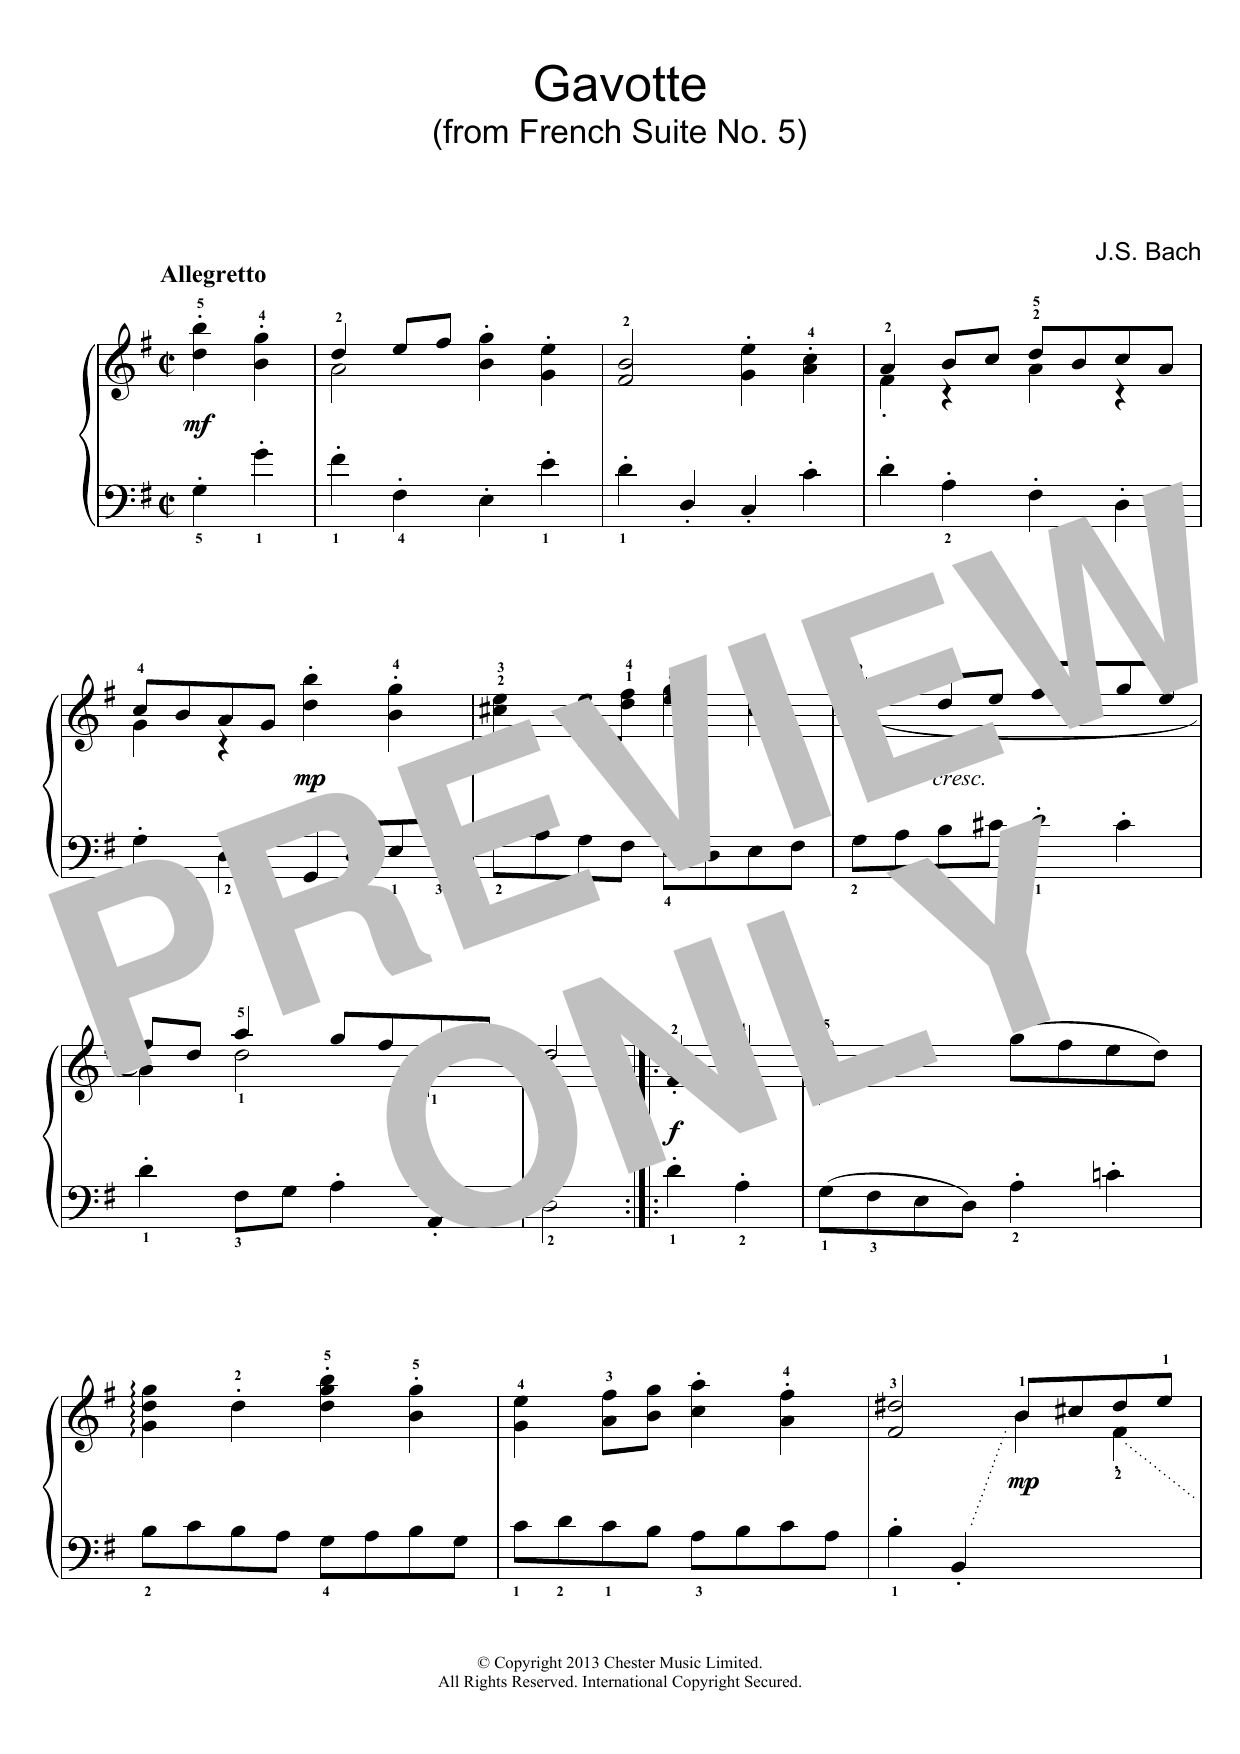 J.S. Bach Gavotte (from French Suite No. 5) sheet music preview music notes and score for Piano including 2 page(s)